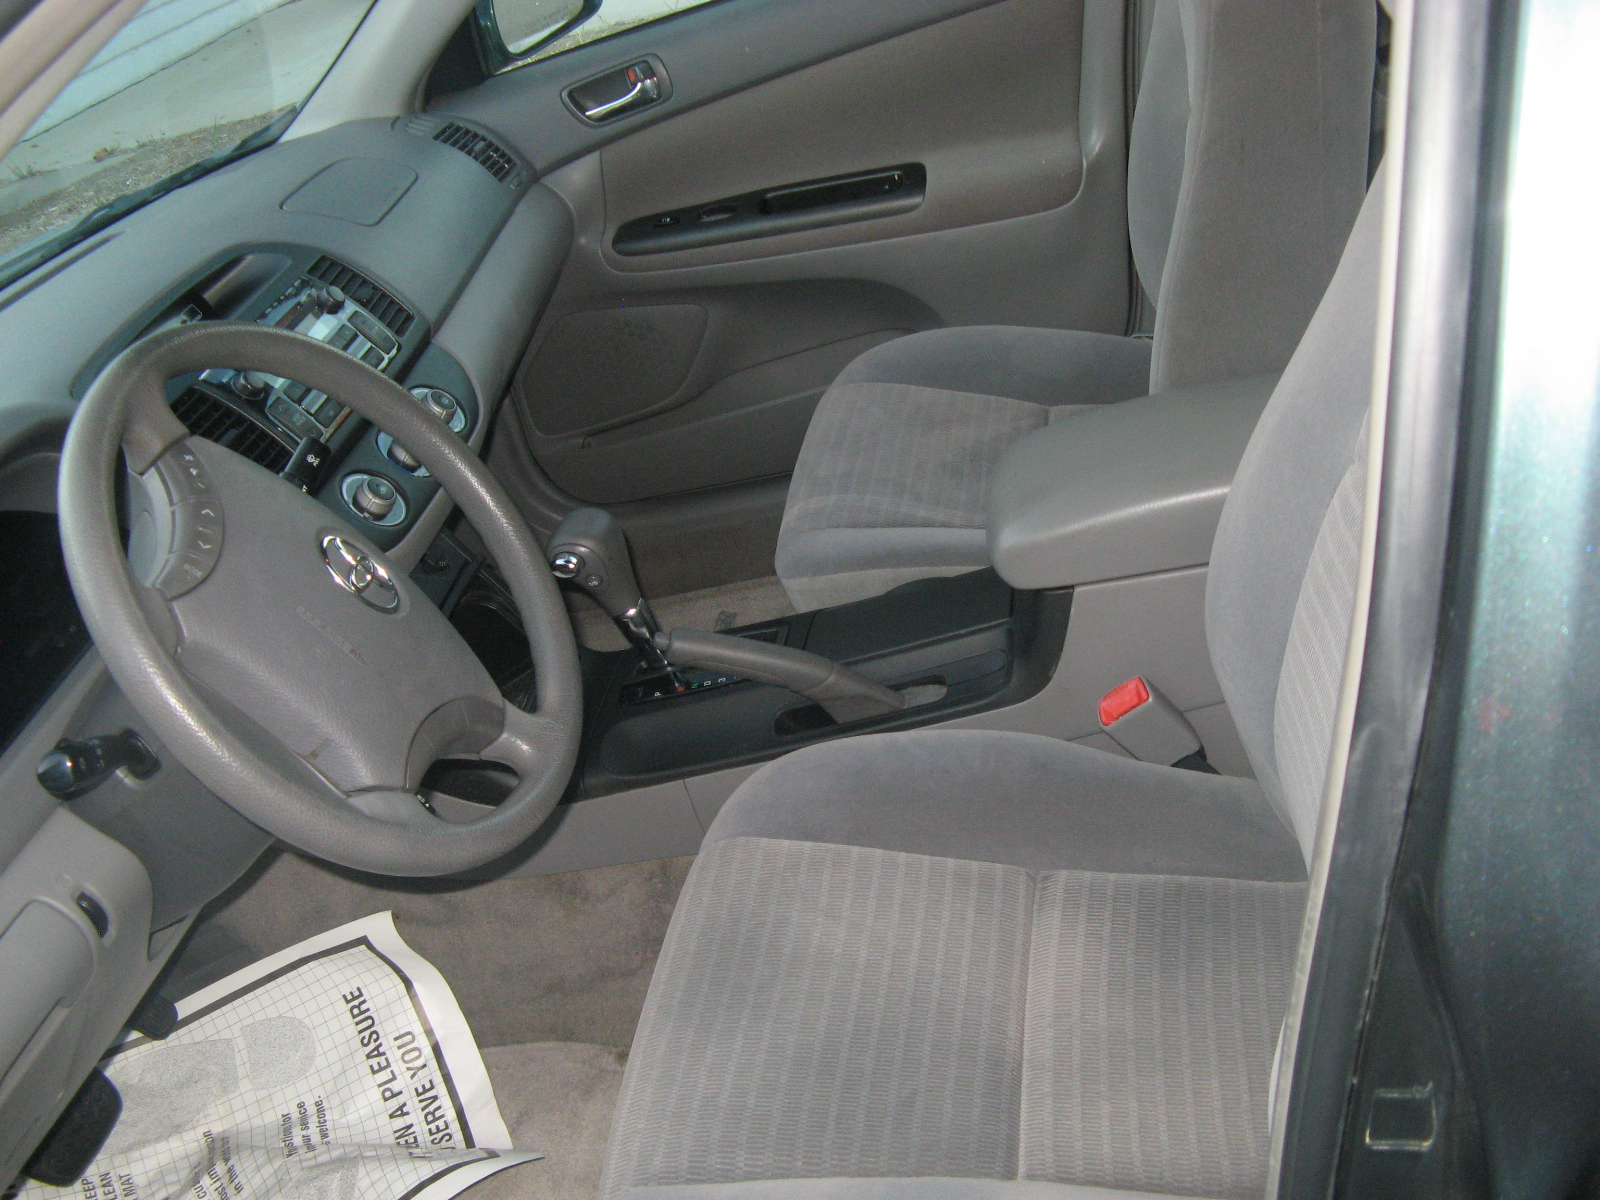 2006 toyota camry interior pictures cargurus. Black Bedroom Furniture Sets. Home Design Ideas